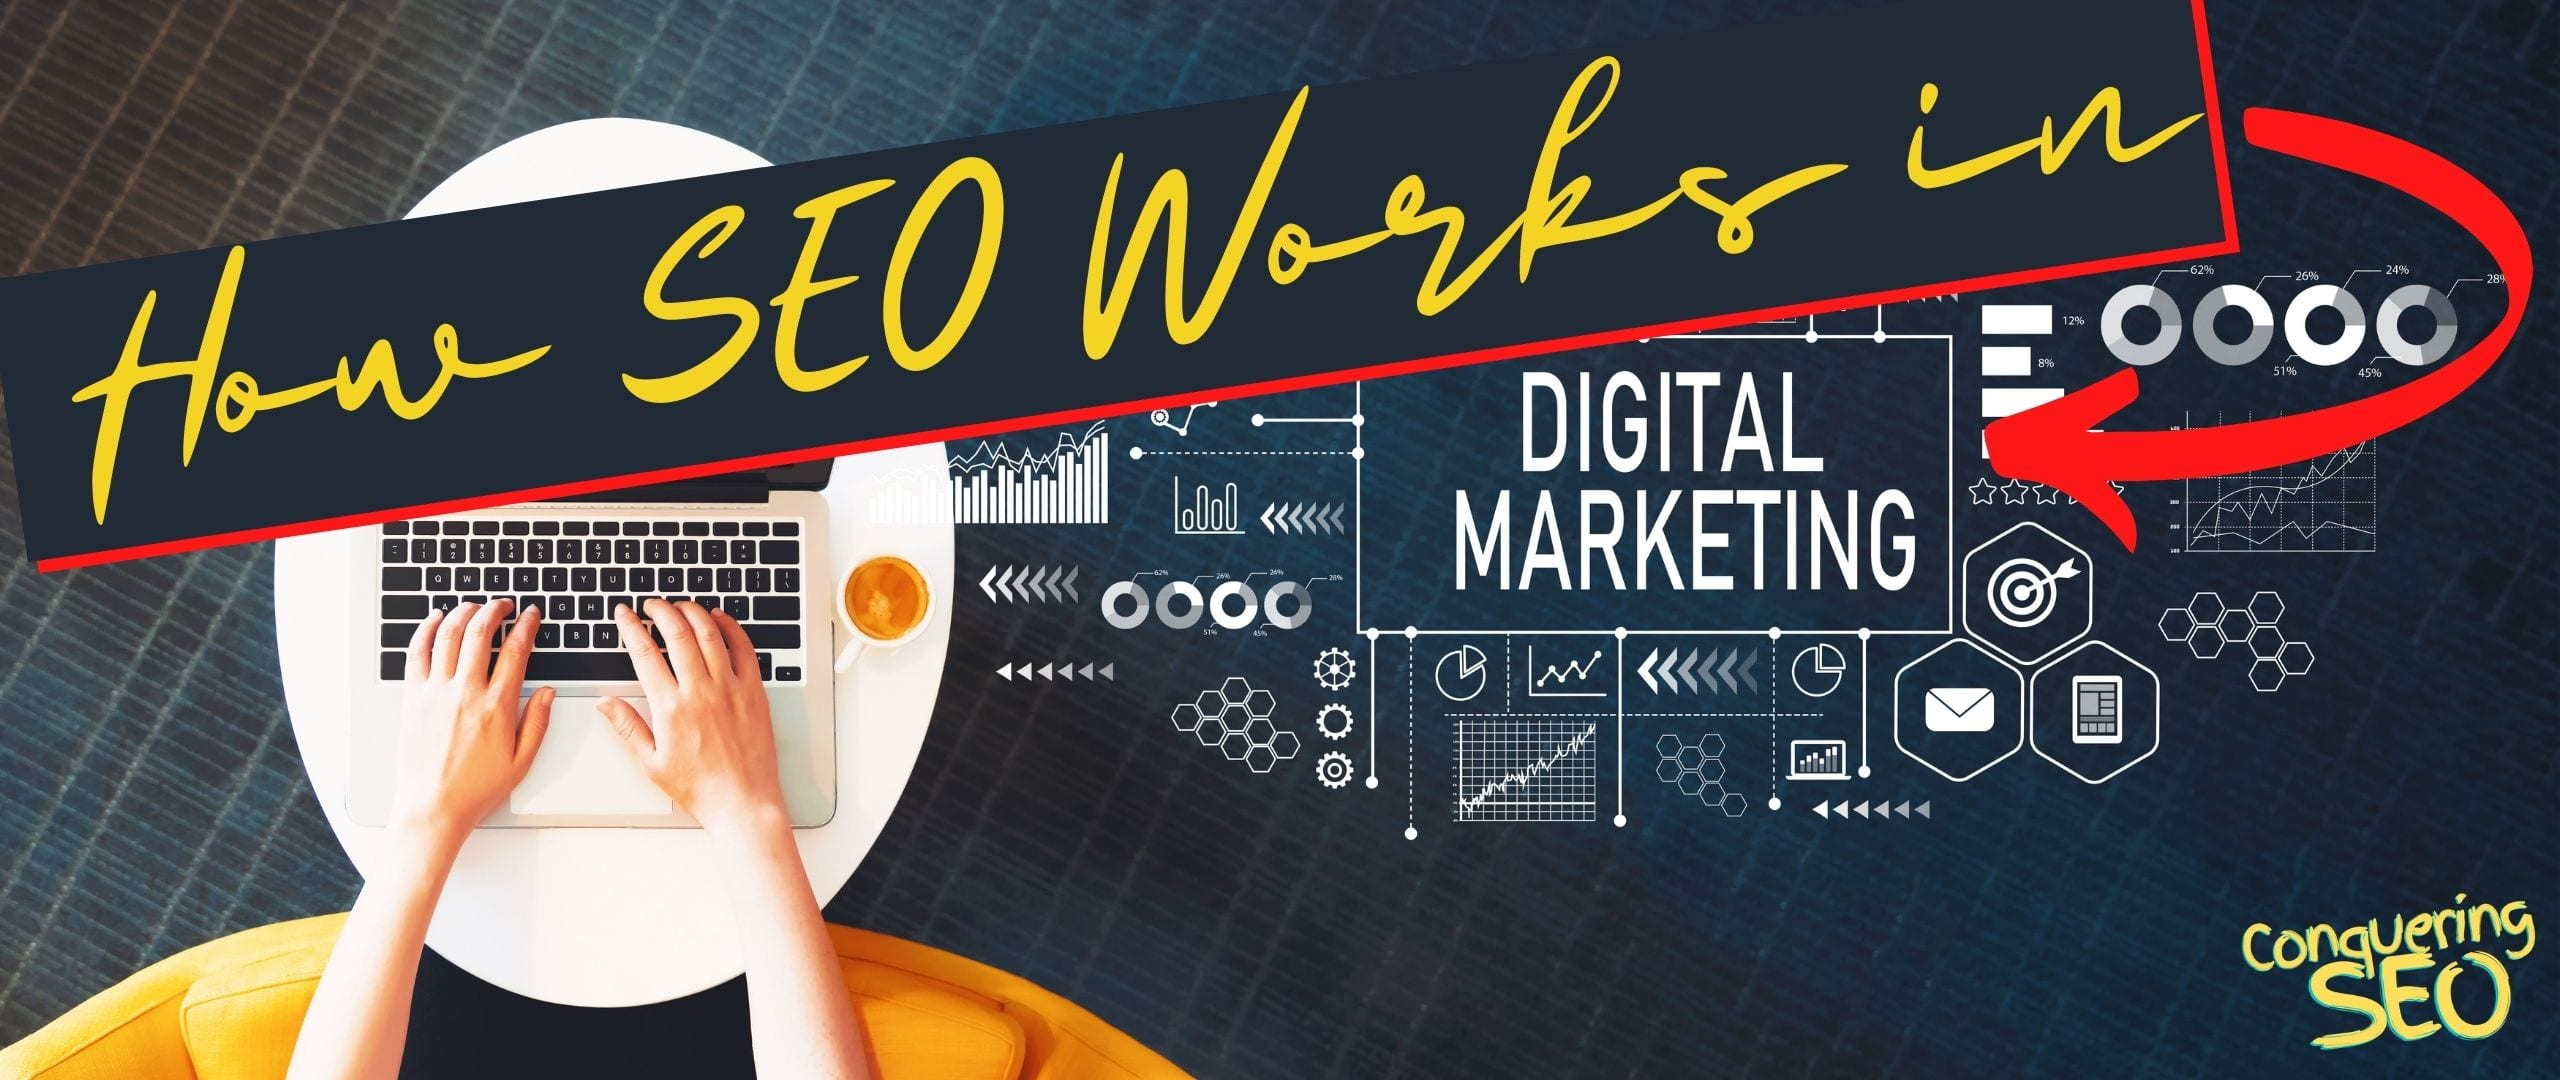 picture of How SEO Works in Digital Marketing banner